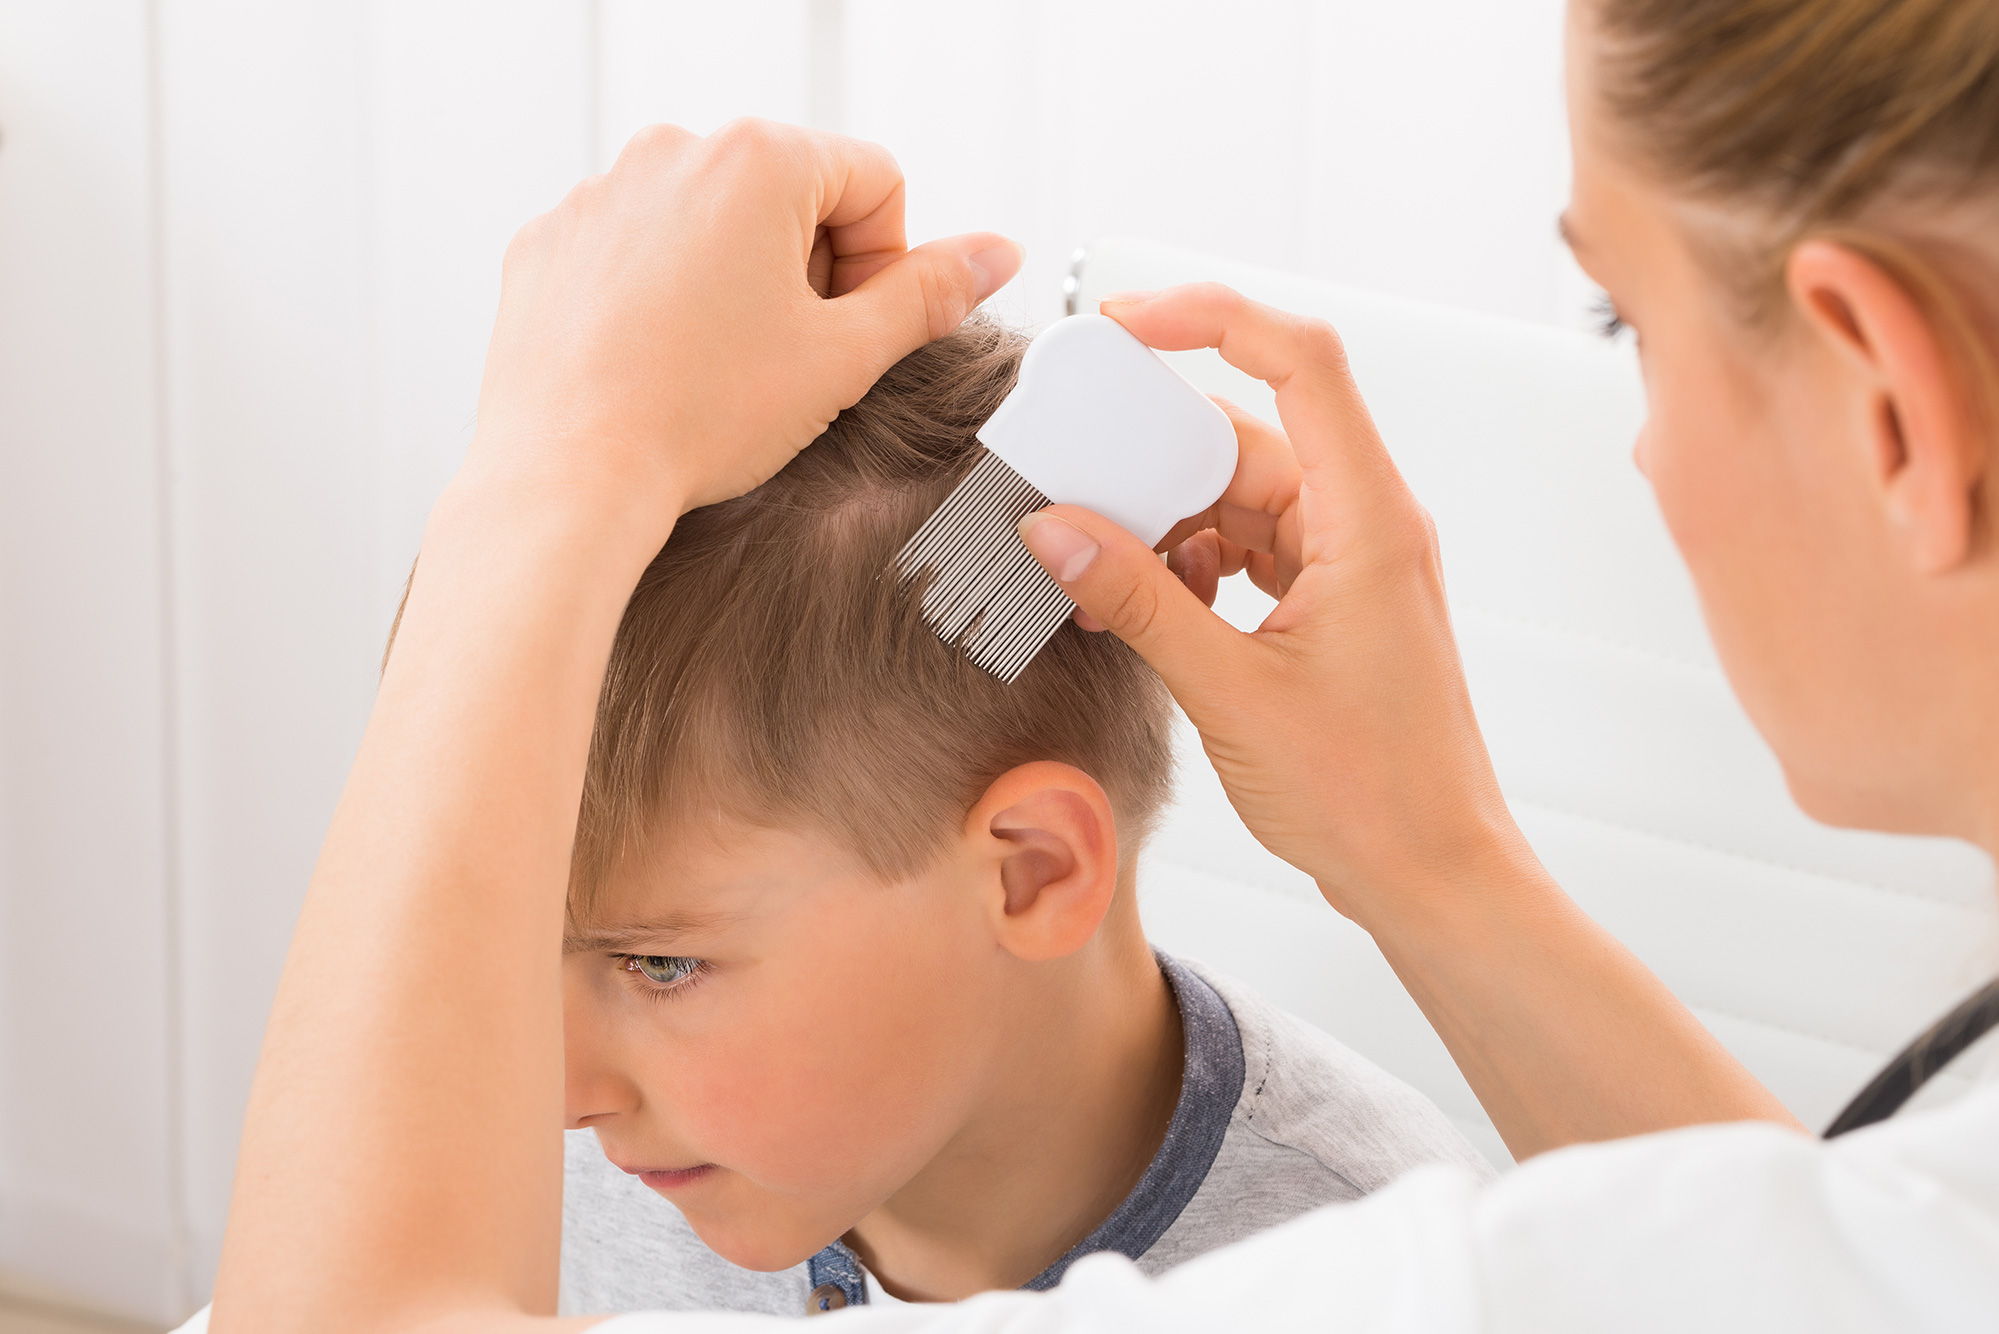 Mom looking for lice on her child's head using an anti-lice comb